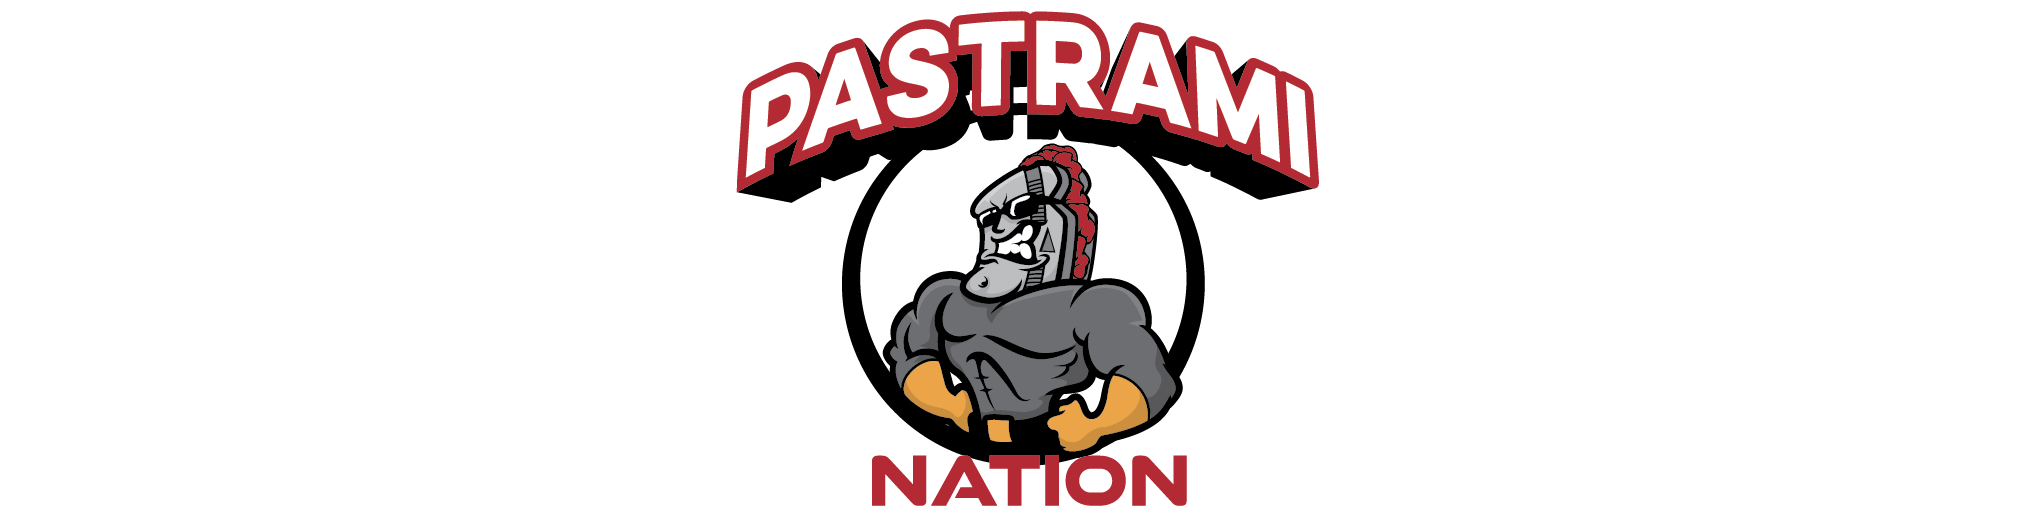 Pastrami Nation- The Meat of Pop Culture